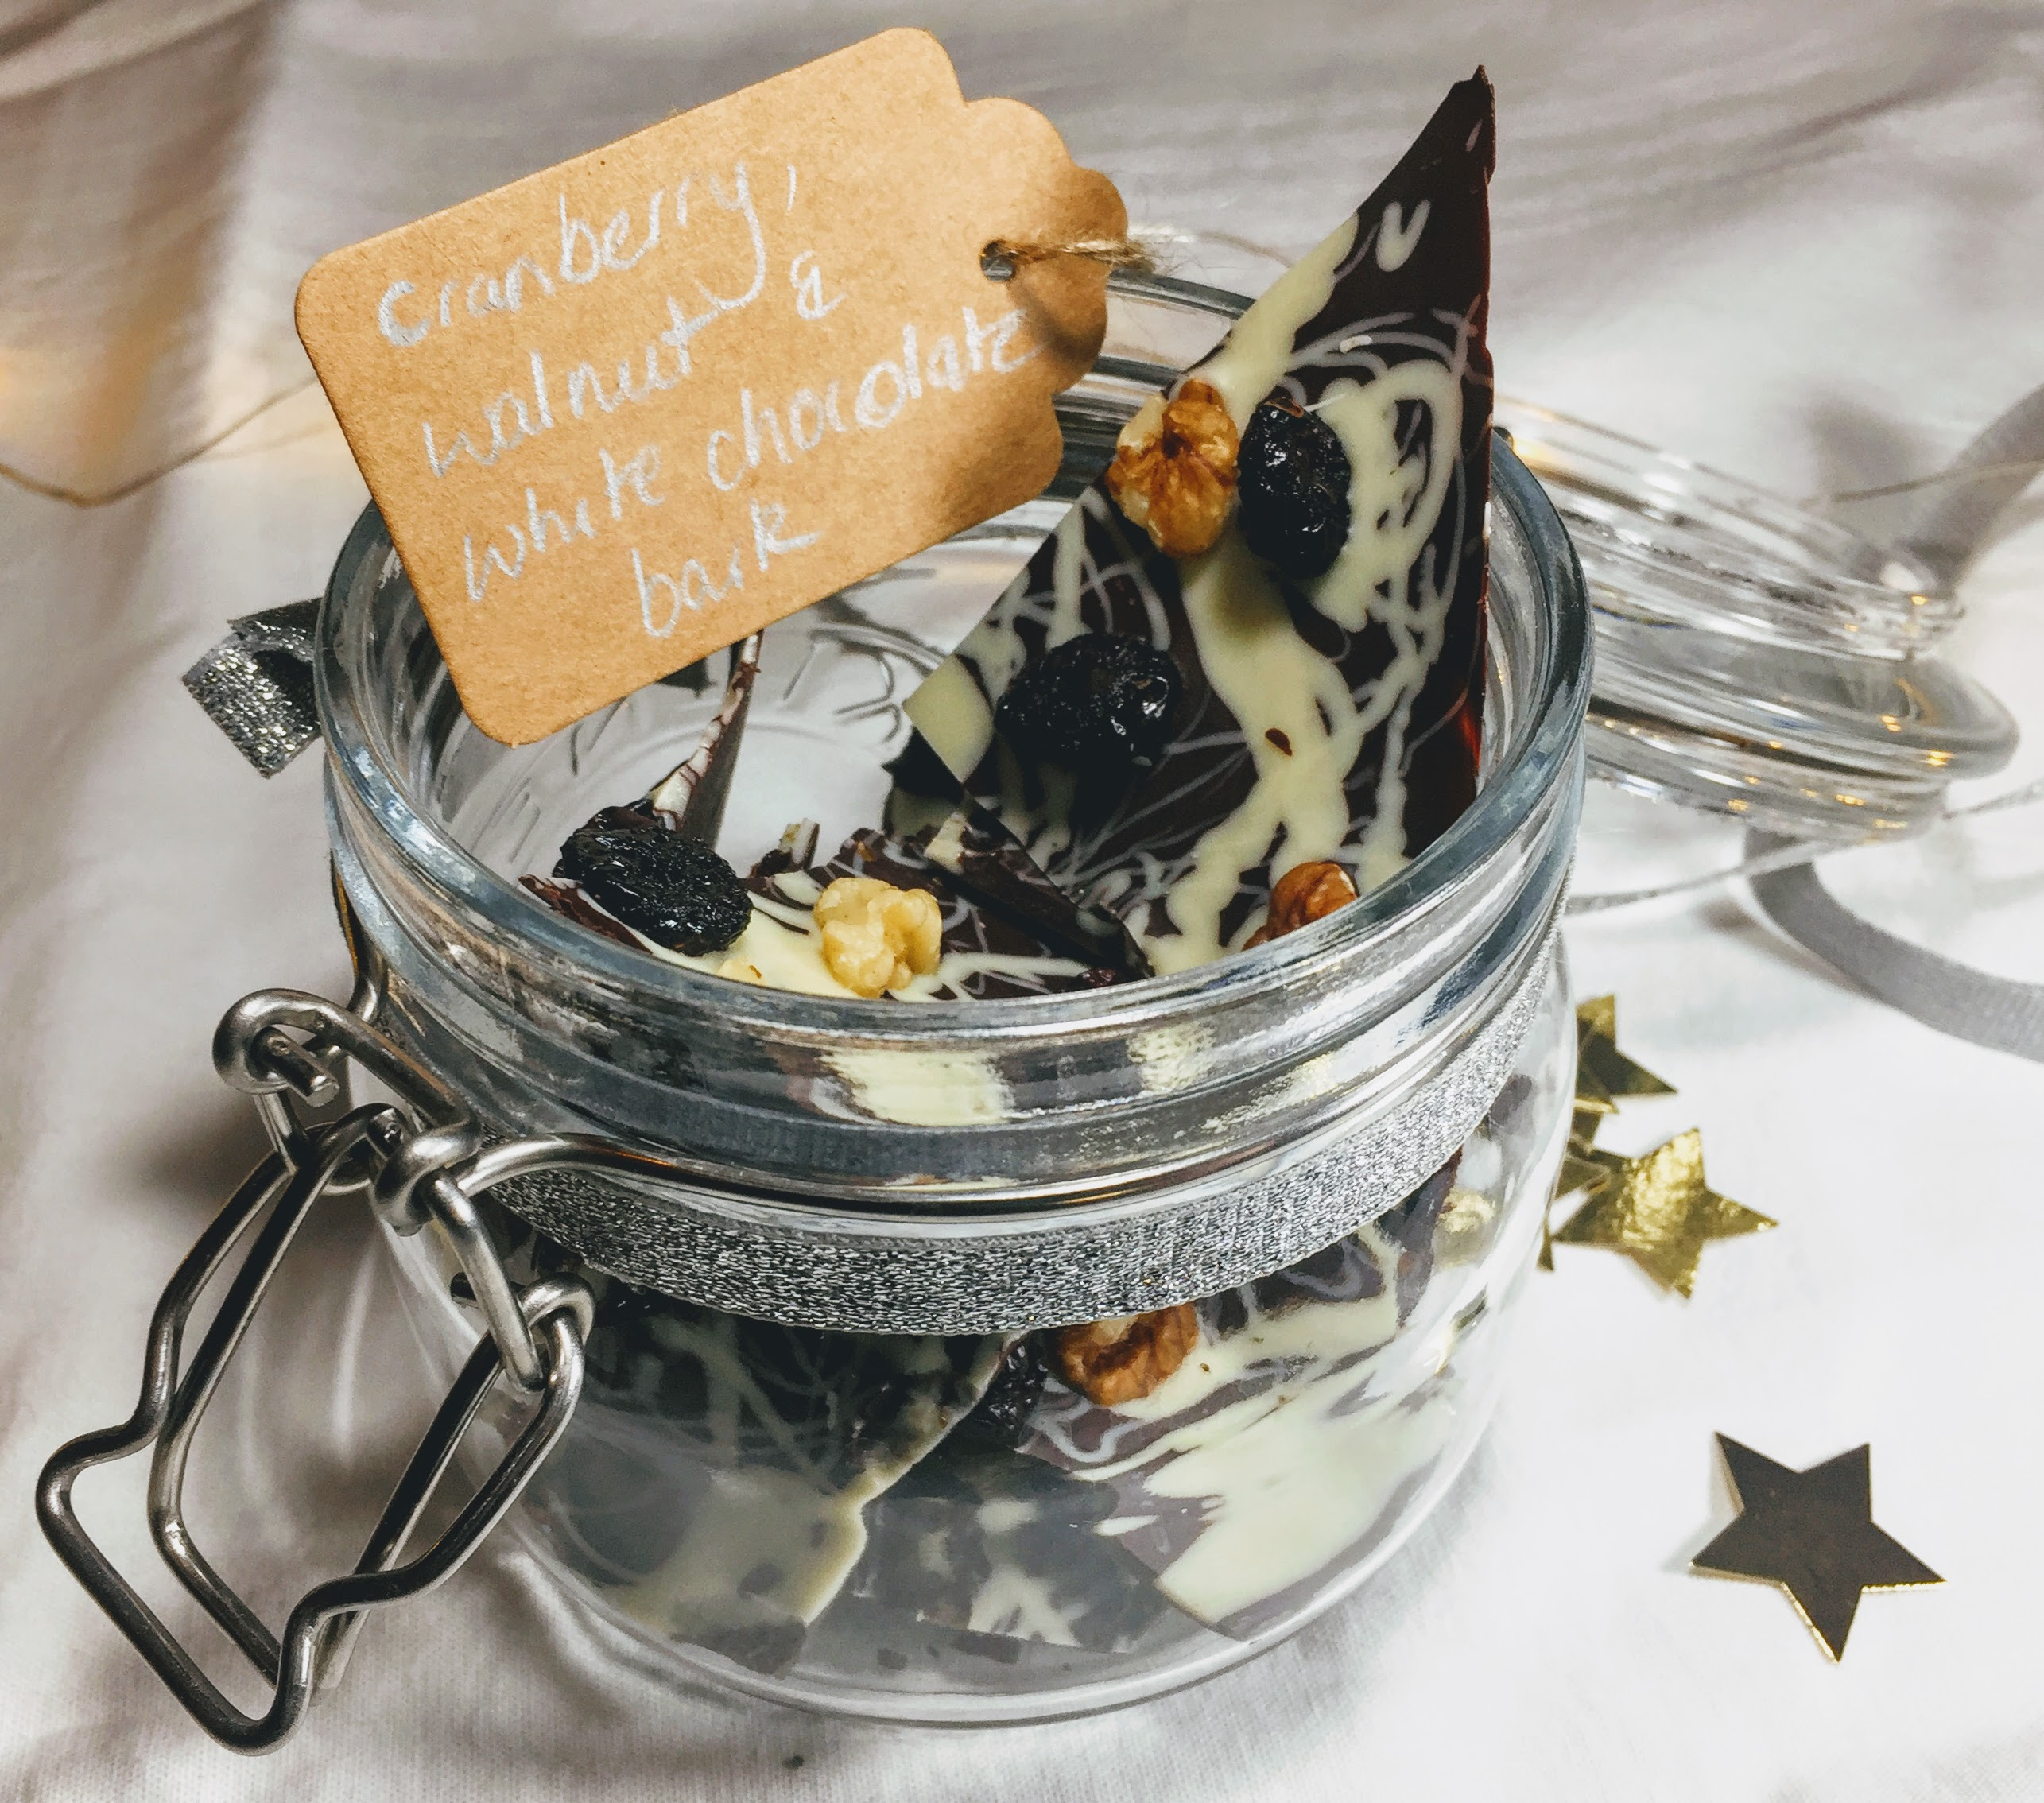 A small glass kilner jar filled with shards of chocolate bark. There jar has a glittery silver ribbon and a brown paper tag that reads 'Cranberry, walnut & white chocolate bark' handwritten in silver pen.